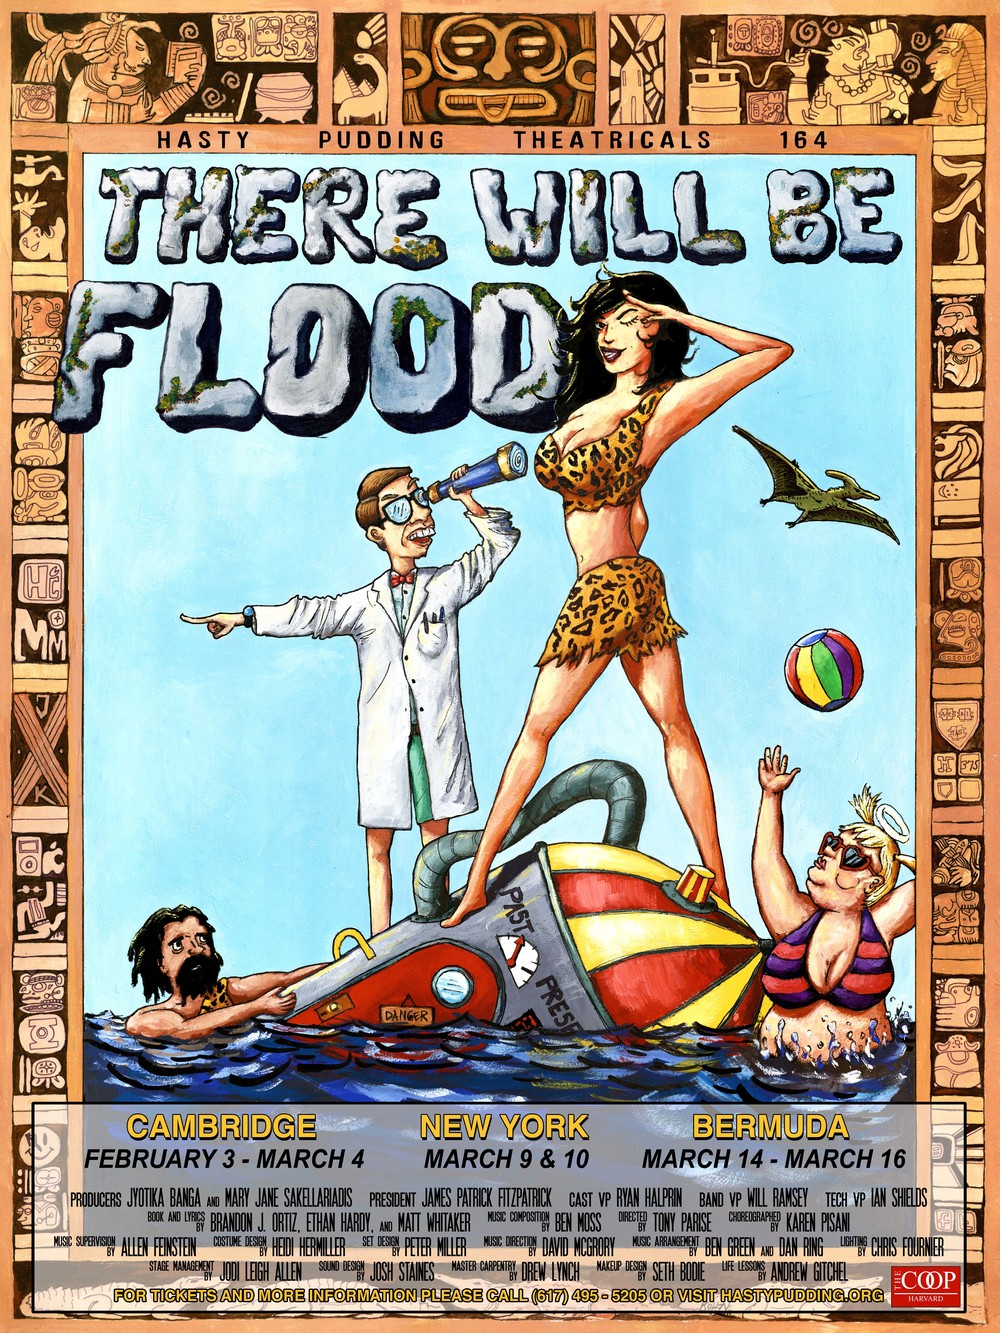 Hasty Puddings 2012: There Will Be Flood